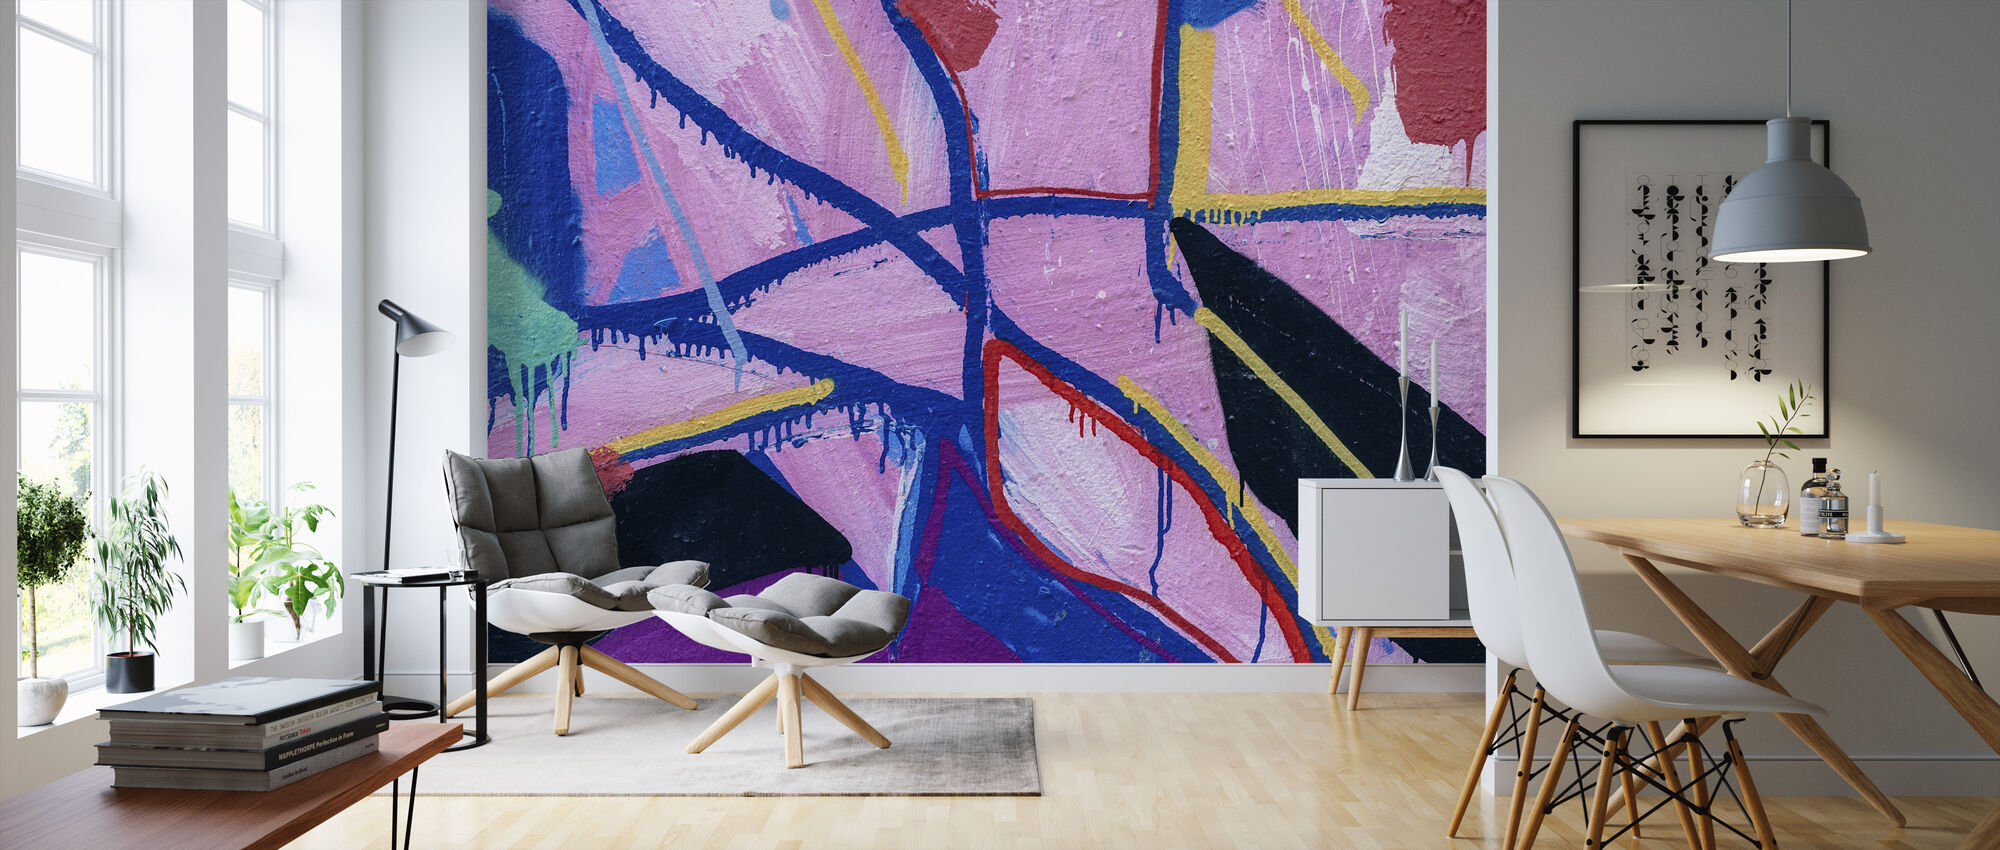 Colorful Paint - Wallpaper - Living Room